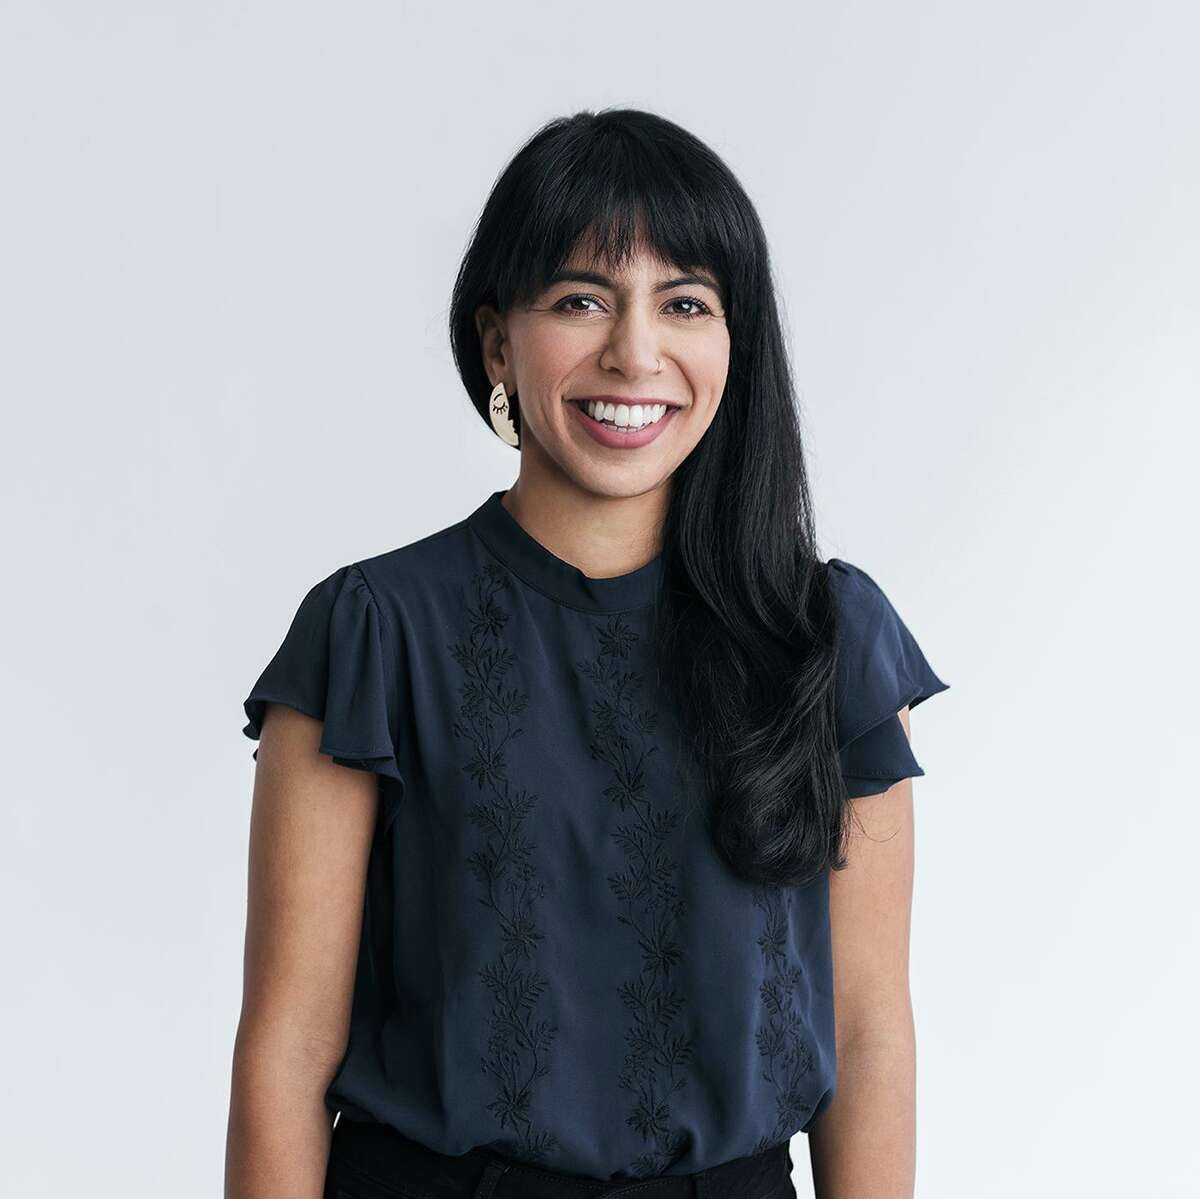 SA2020's current director of community impact, Kiran Kaur Bains, will be the organization's new president and CEO.